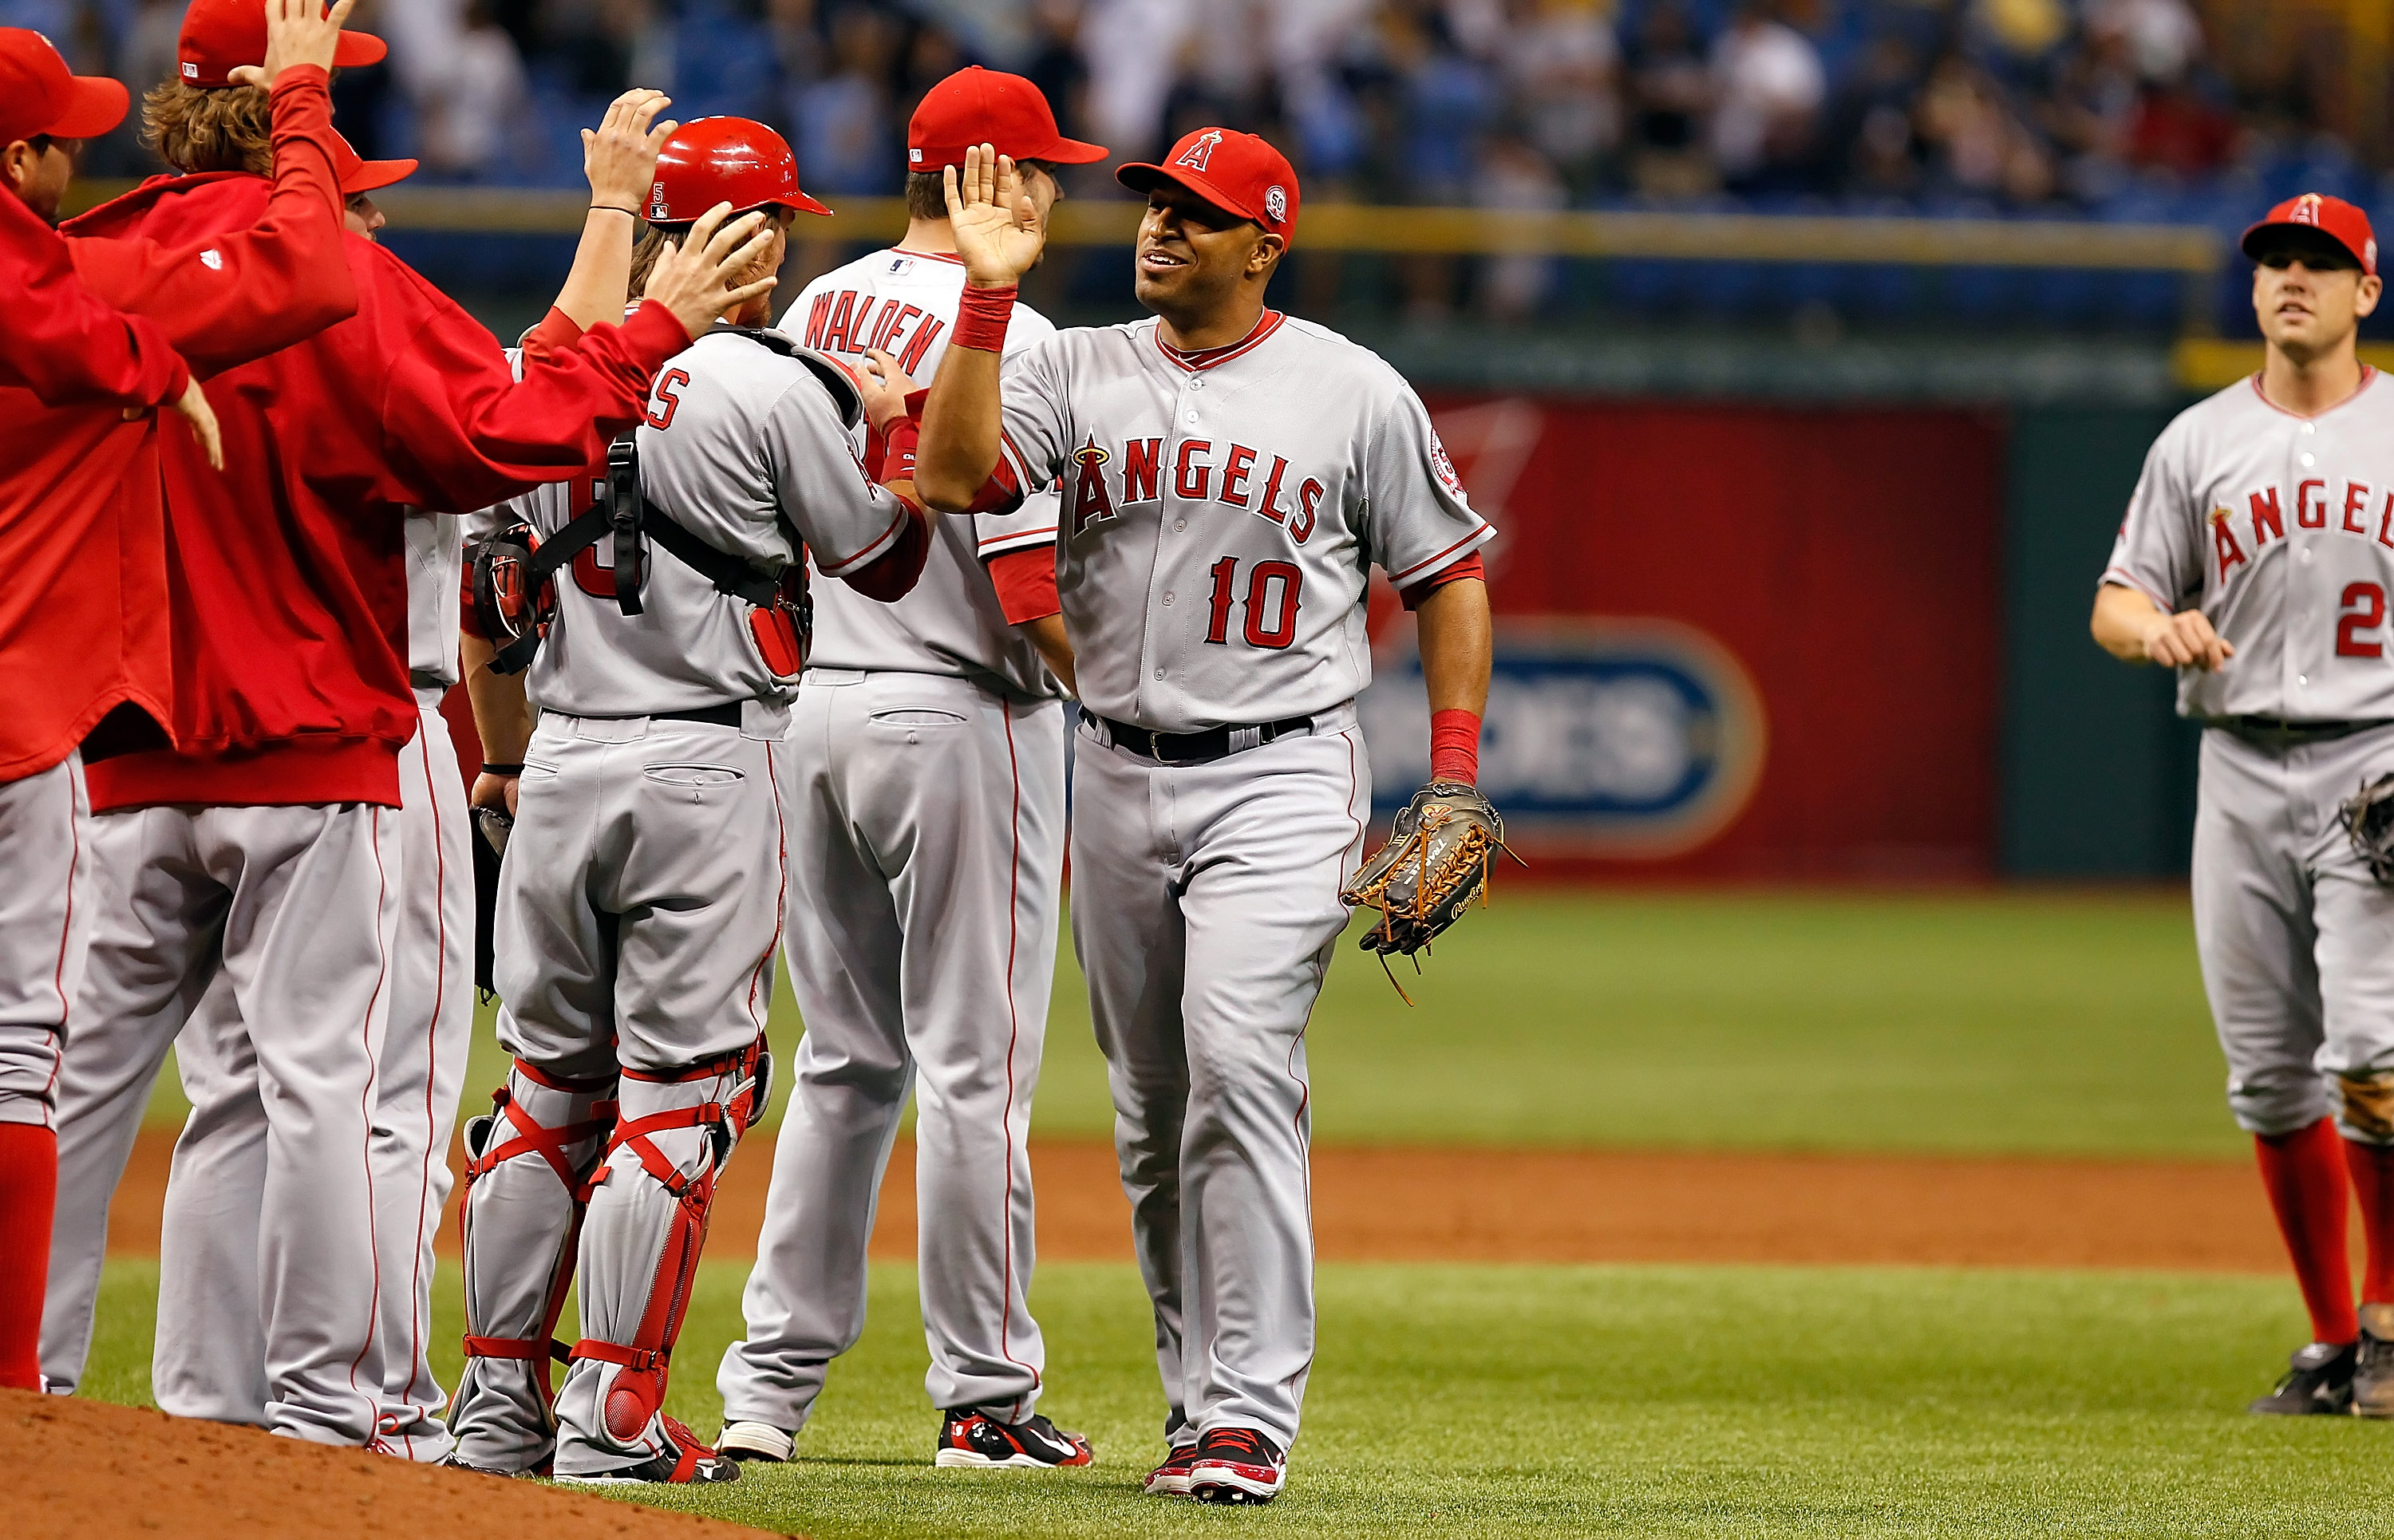 ST. PETERSBURG, FL - APRIL 29:  Outfielder Vernon Wells #10 of the Los Angeles Angels of Anaheim is congratulated by his teammates after their victory over the Tampa Bay Rays at Tropicana Field on April 29, 2011 in St. Petersburg, Florida.  (Photo by J. M